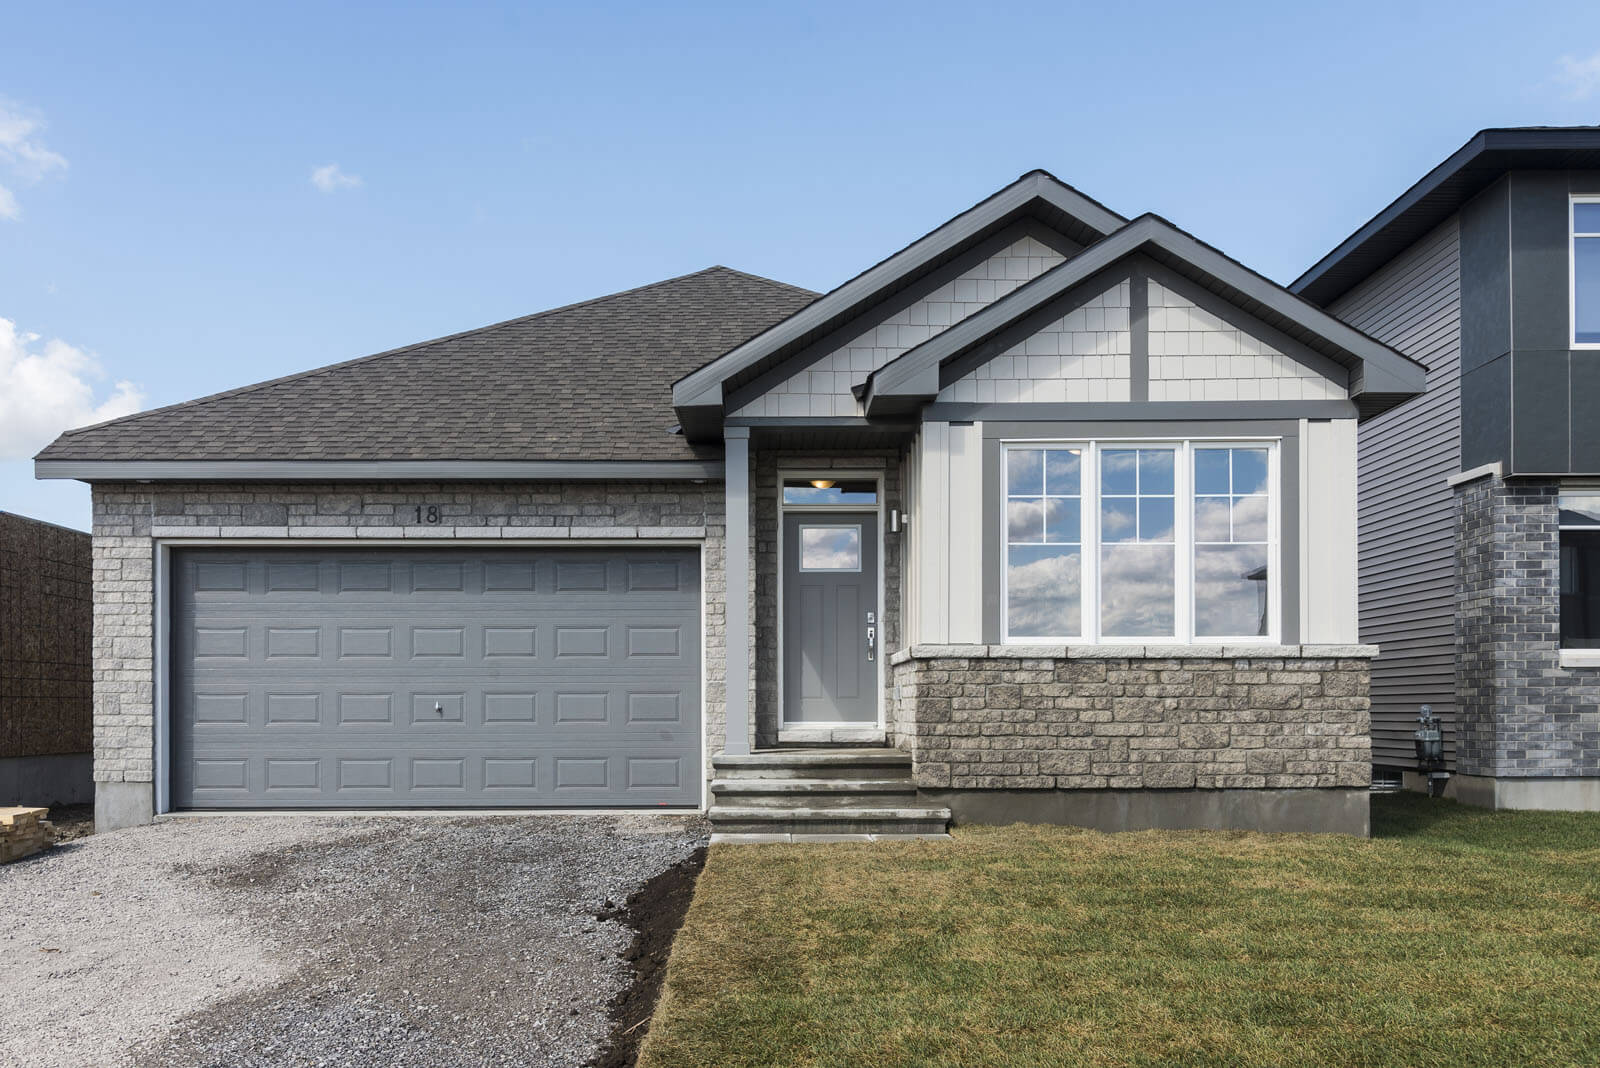 New Ottawa Single Family Home Quick Possession Lancaster in Millers Crossing in Carleton Place, located at 18 Fanning St, Carleton Place Built By Cardel Homes